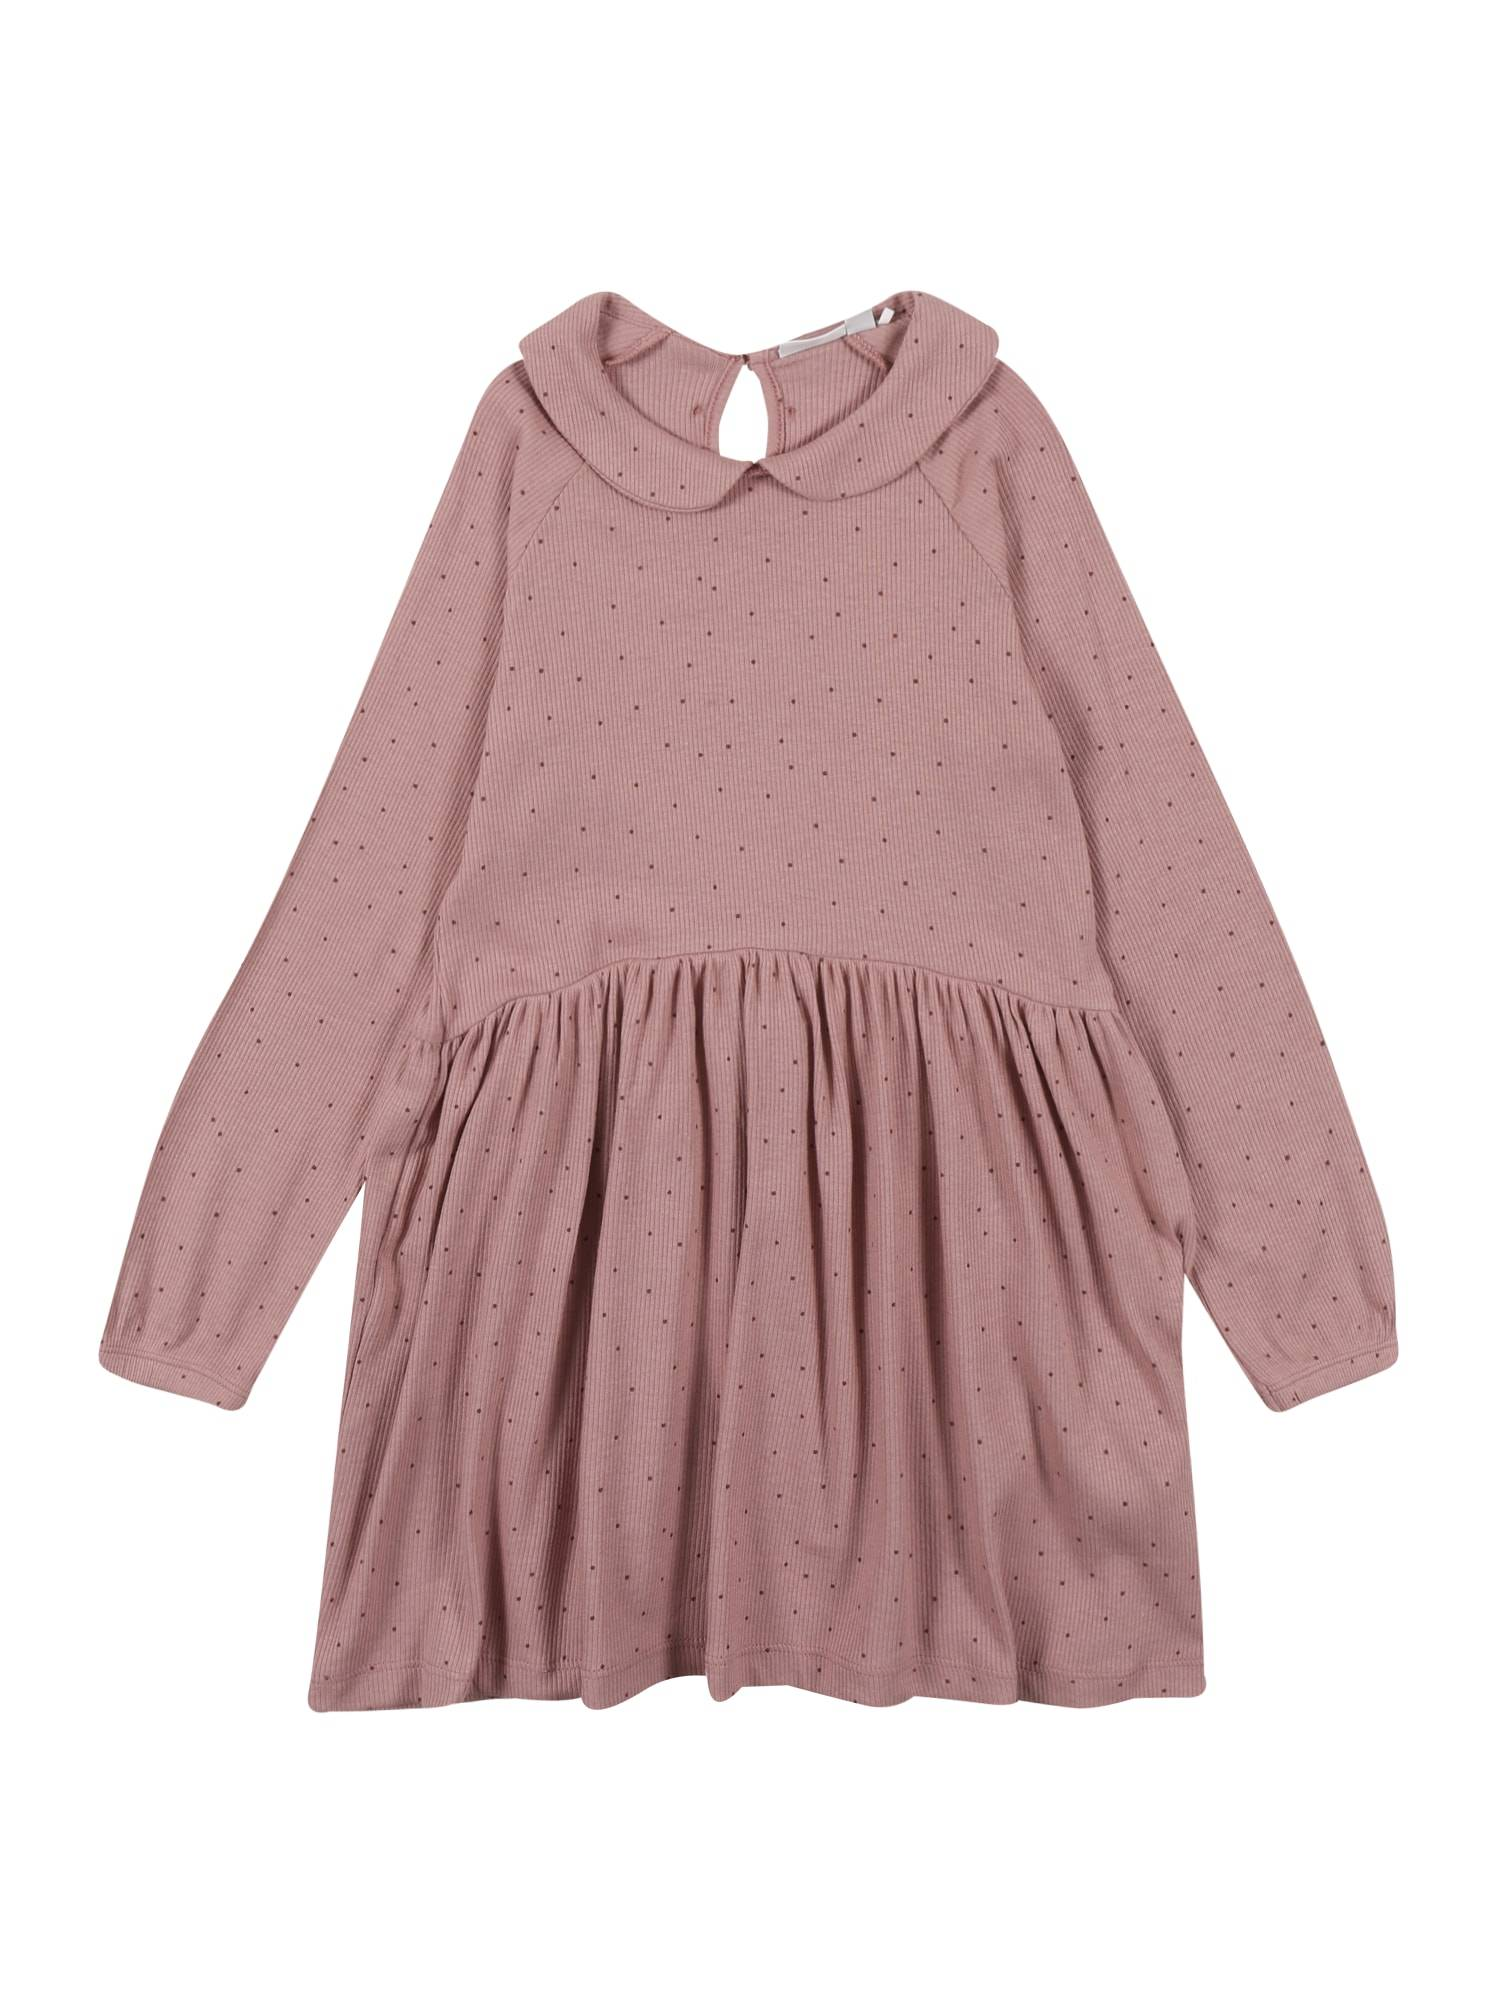 NAME IT Robe  - Rose - Taille: 98 - girl